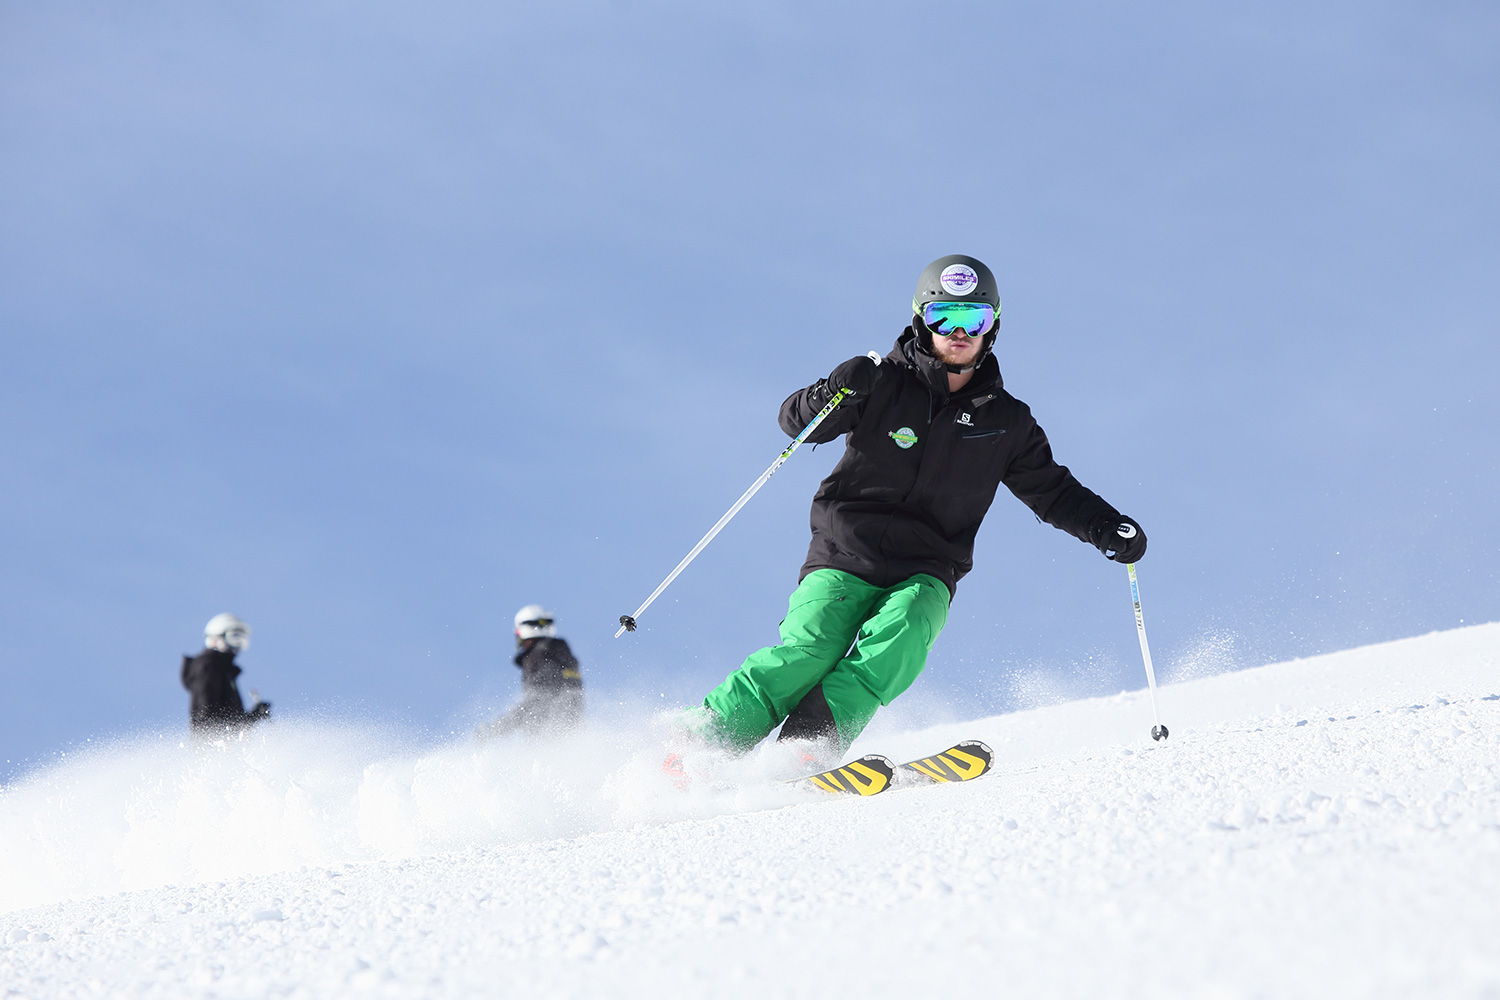 Snoworks GAP Course trainee skiing